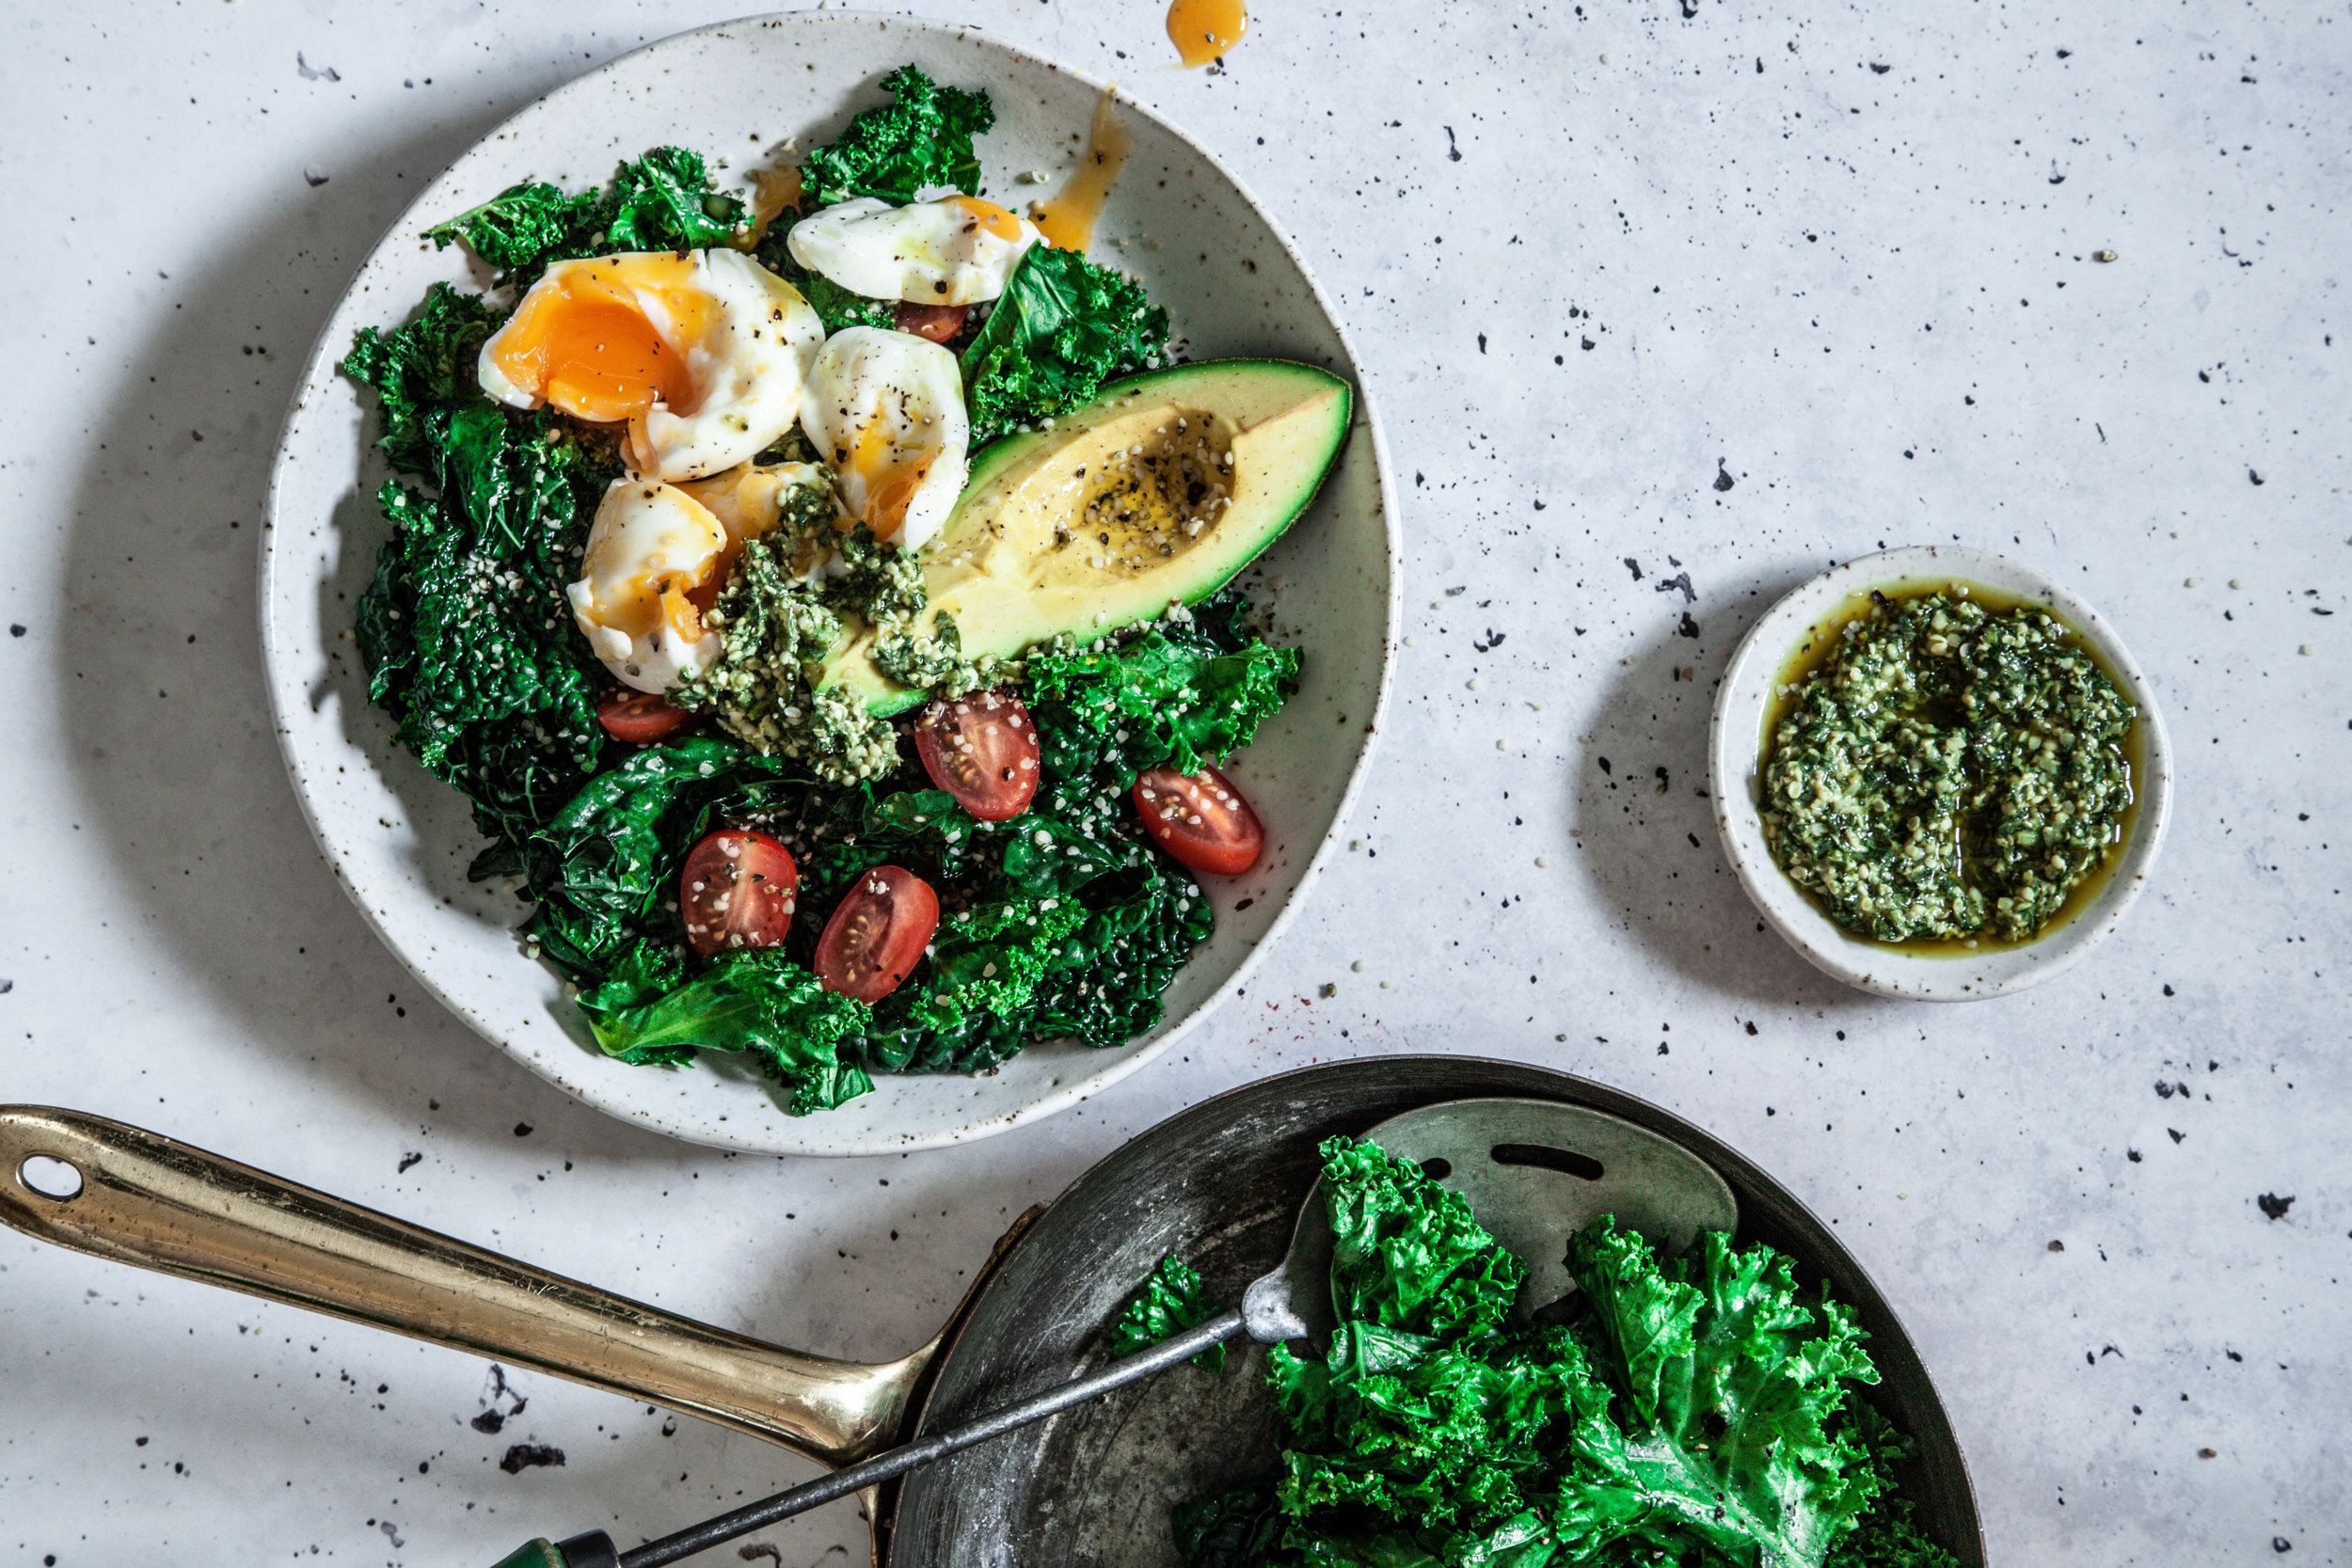 Sauteed kale, poached eggs and hemp seed pesto from Made